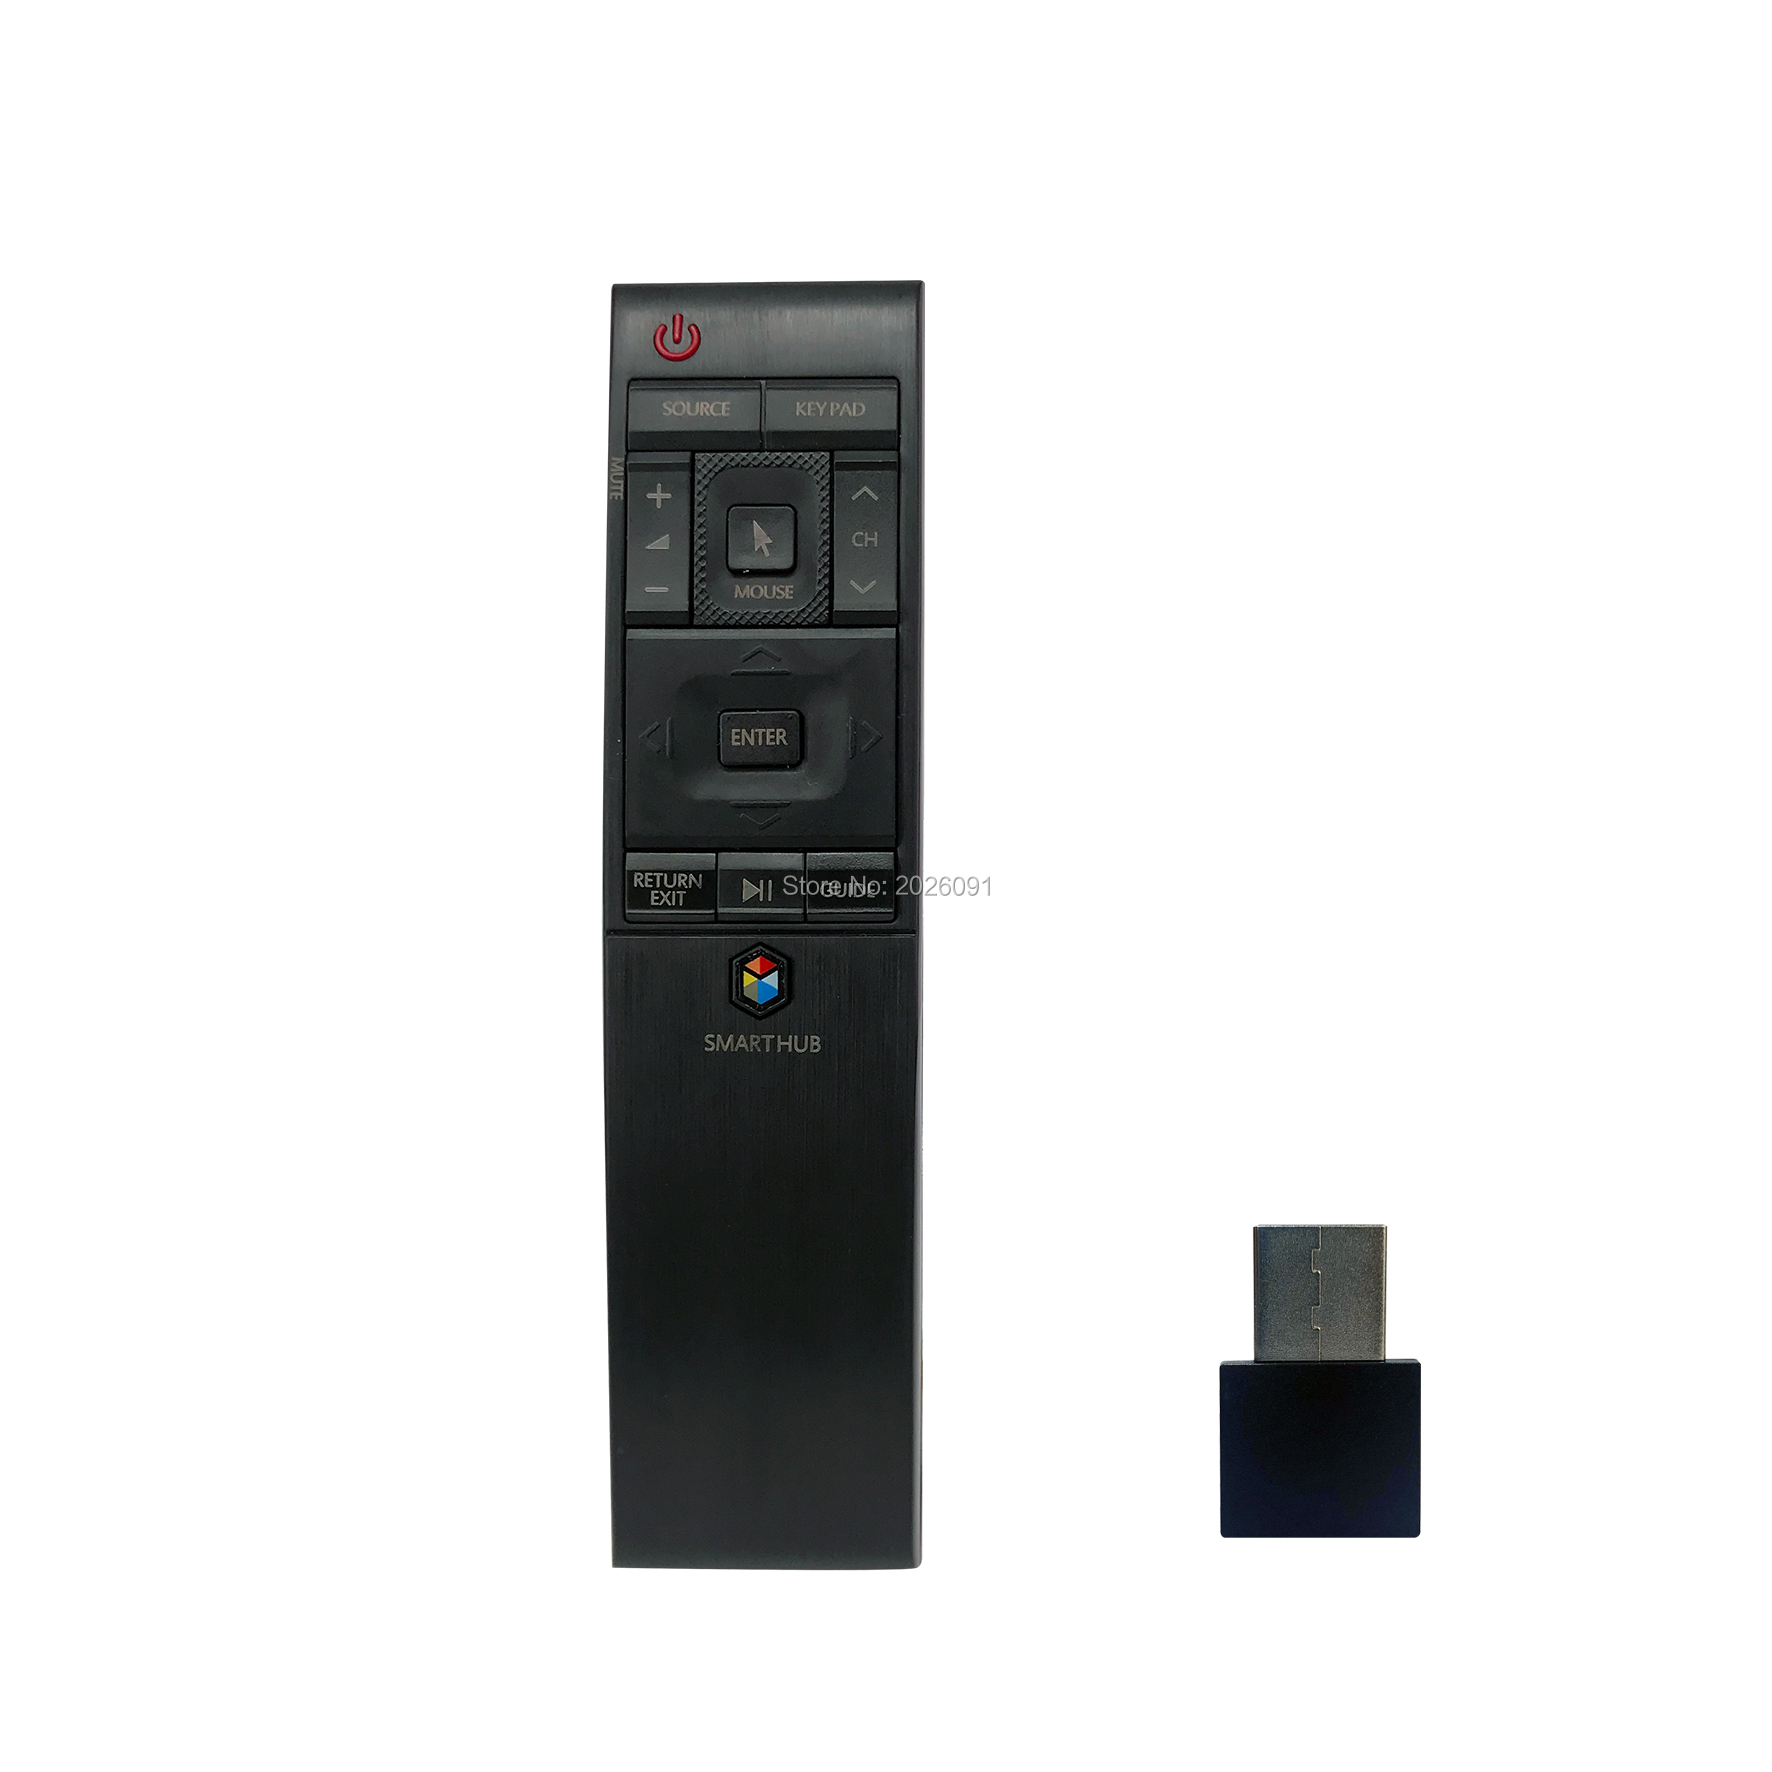 NEW REMOTE CONTROL WITH AIR MOUSE FOR SAMSUNG CURVED SUND UHD BN59-01220E BN59-01220G BN59-01221J BN59-01220A